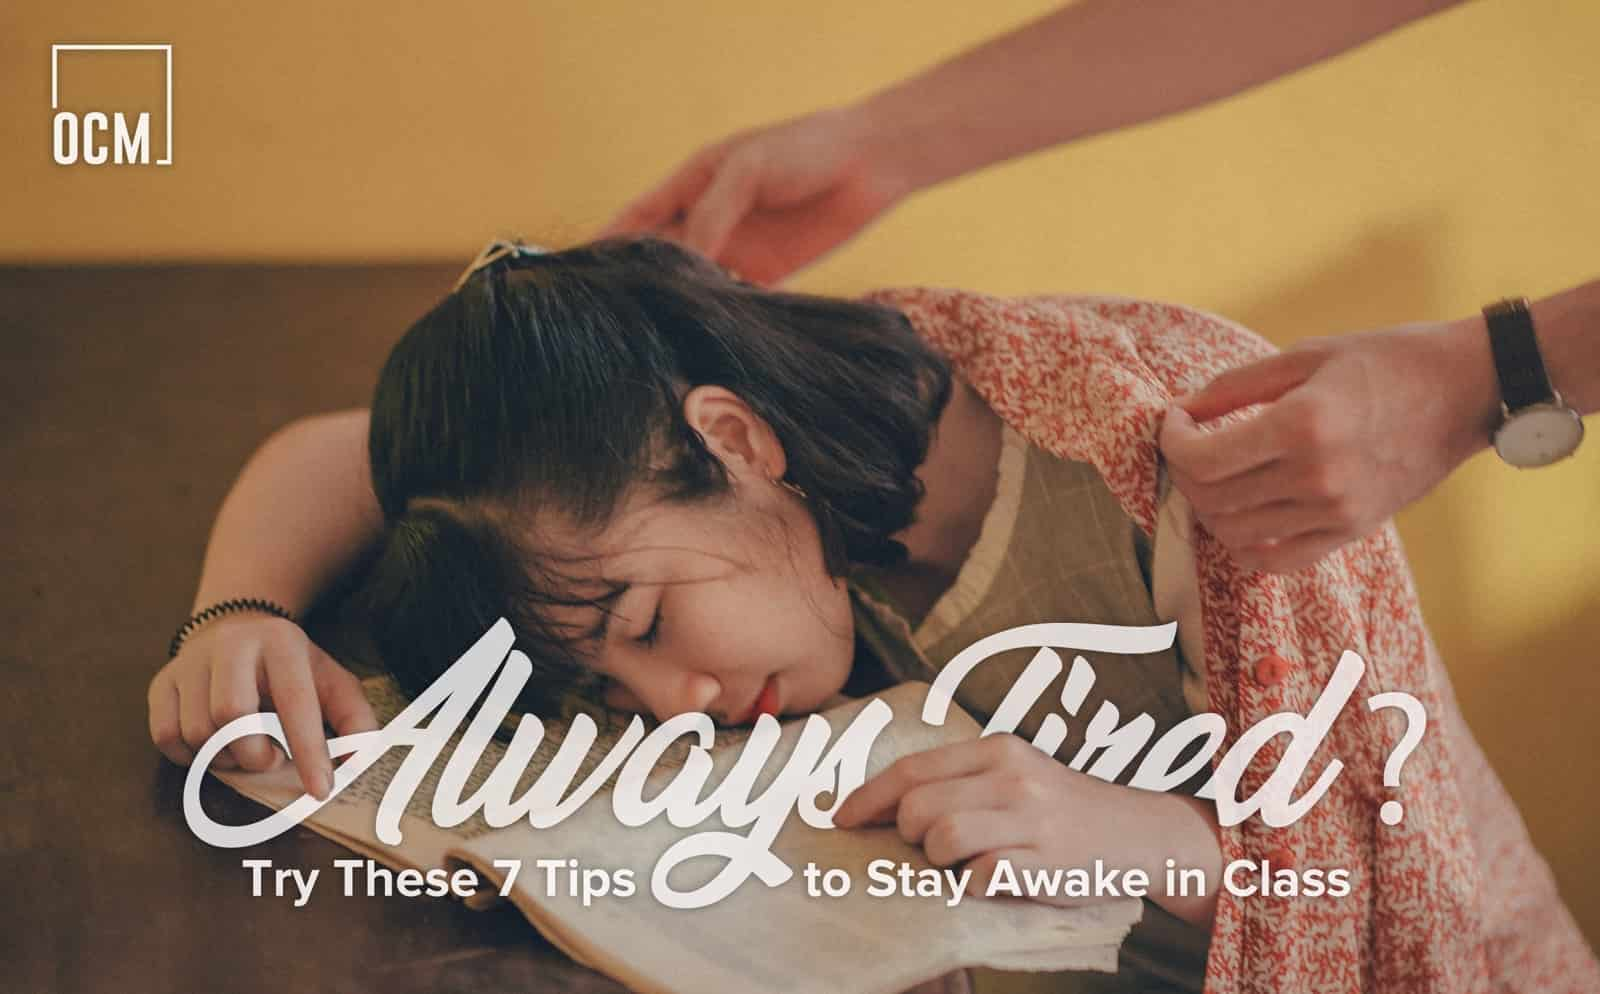 Tips to Stay Awake in Class